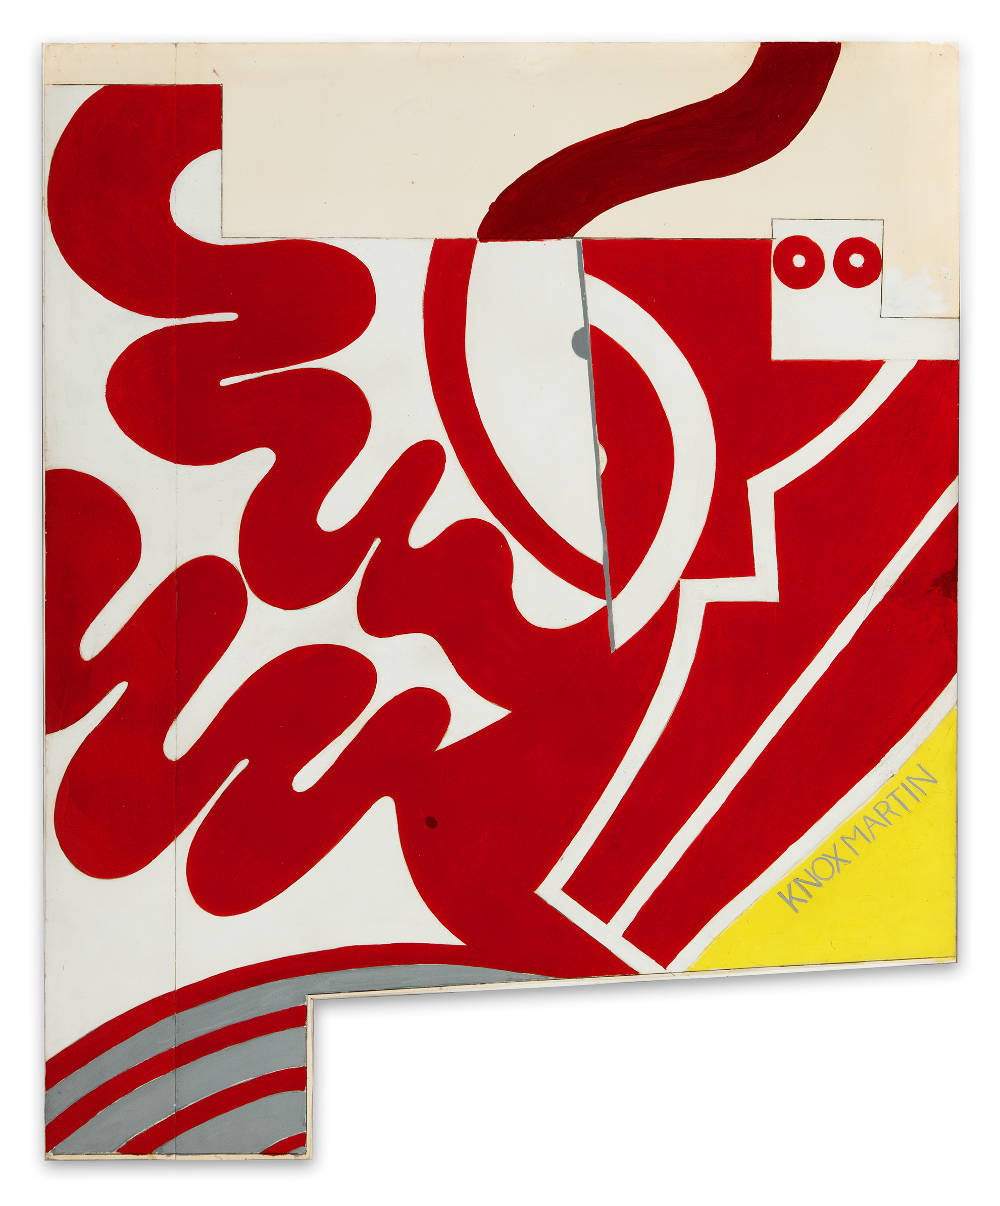 Knox Martin (b. 1923), Maquette for Wall Mural, 1975. Signed lower right: KNOX MARTIN. Acrylic and graphite on paper mounted to foamcore 43 (H) x 35 (W) x 1 (D) inches